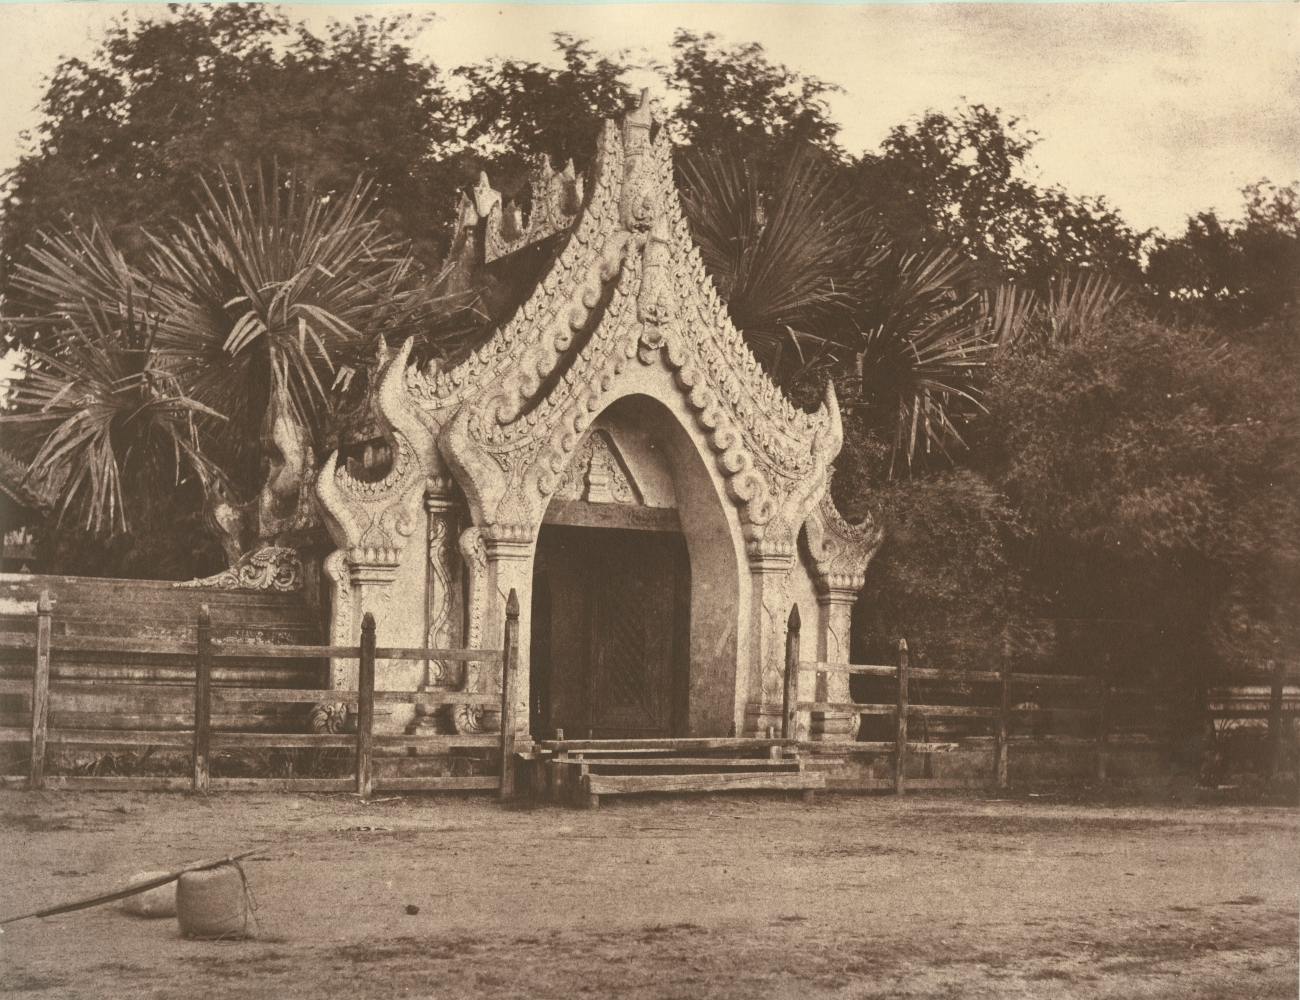 """Captain Linnaeus TRIPE (English, 1822-1902) """"No. 60. Amerapoora. Gateway of Maja Bounghian Kyoung."""", 1855 Albumenized salt print from a waxed paper negative 28.6 x 34.8 cm mounted on 45.6 x 58.3 cm paper Printed label with plate number, title and """"A solidly built wall usually surrounds Kyoungs; in the centre of each side of which is a gateway similar to the above."""" on mount"""